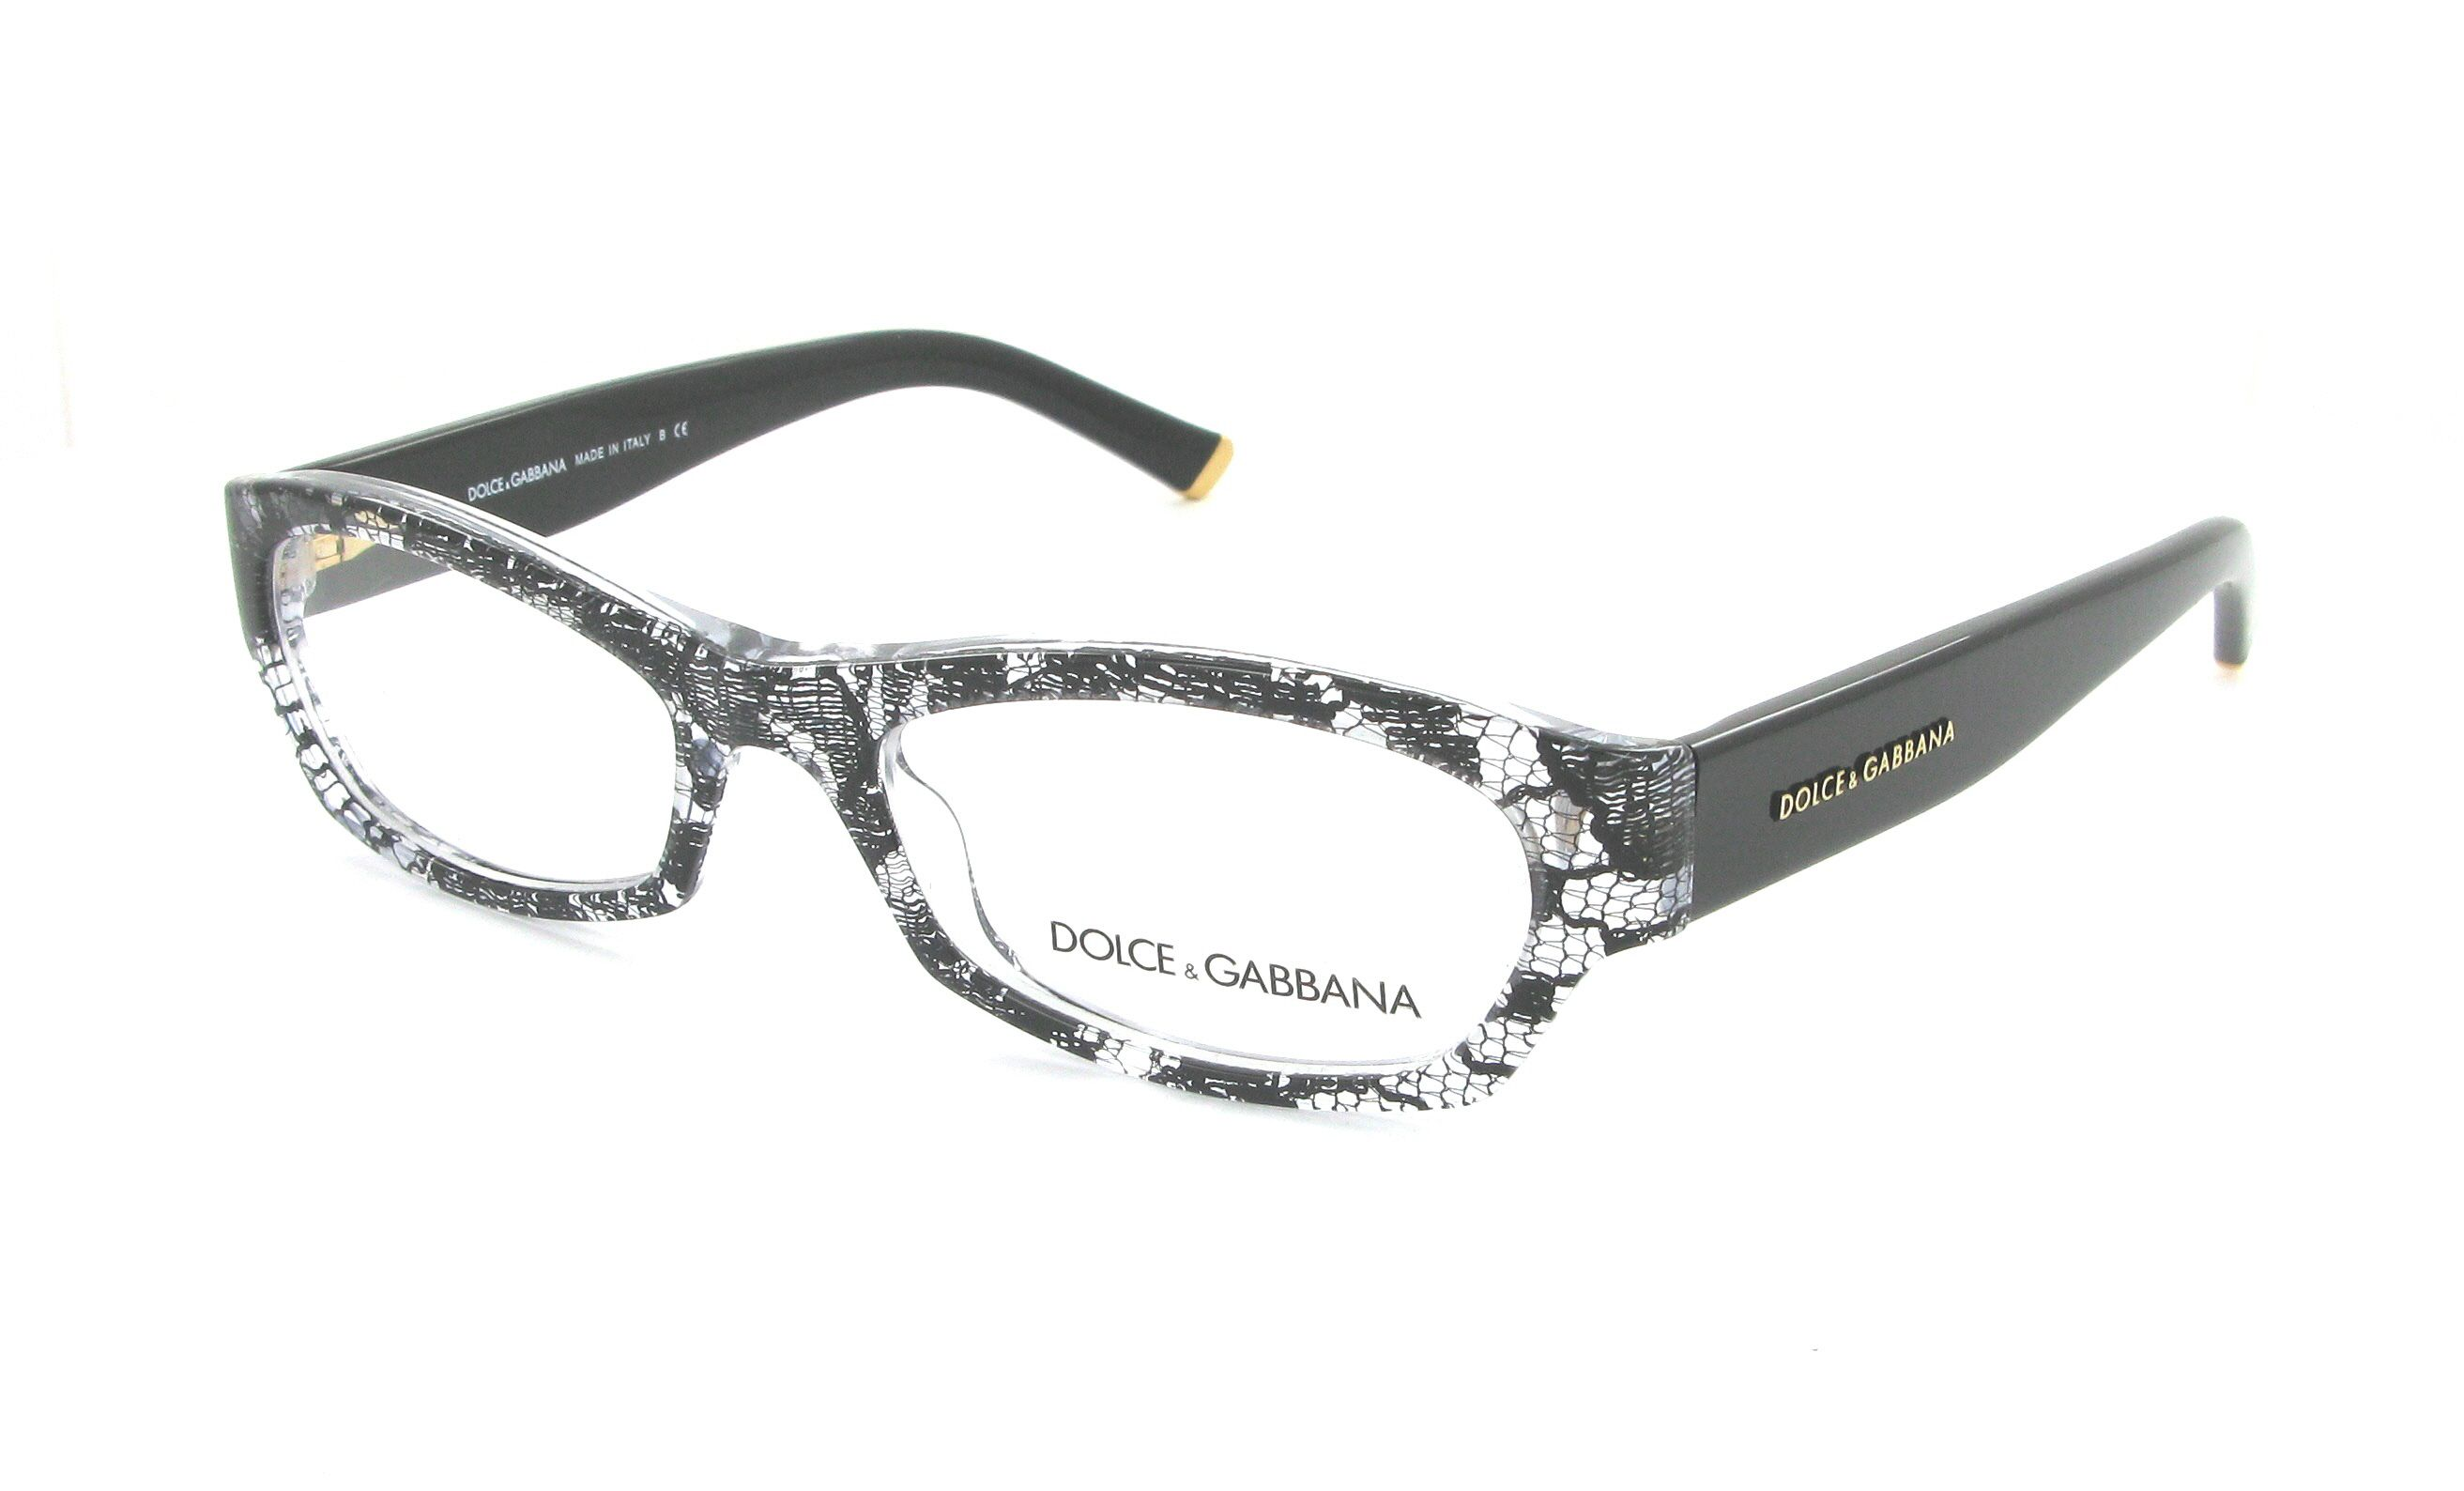 fdb300f6c993e6 My new glasses! i love them ...there is an actual piece of lace inside the  glasses not just painted plastic i love these Dolce   Gabbana glasses...ohhhh  ...